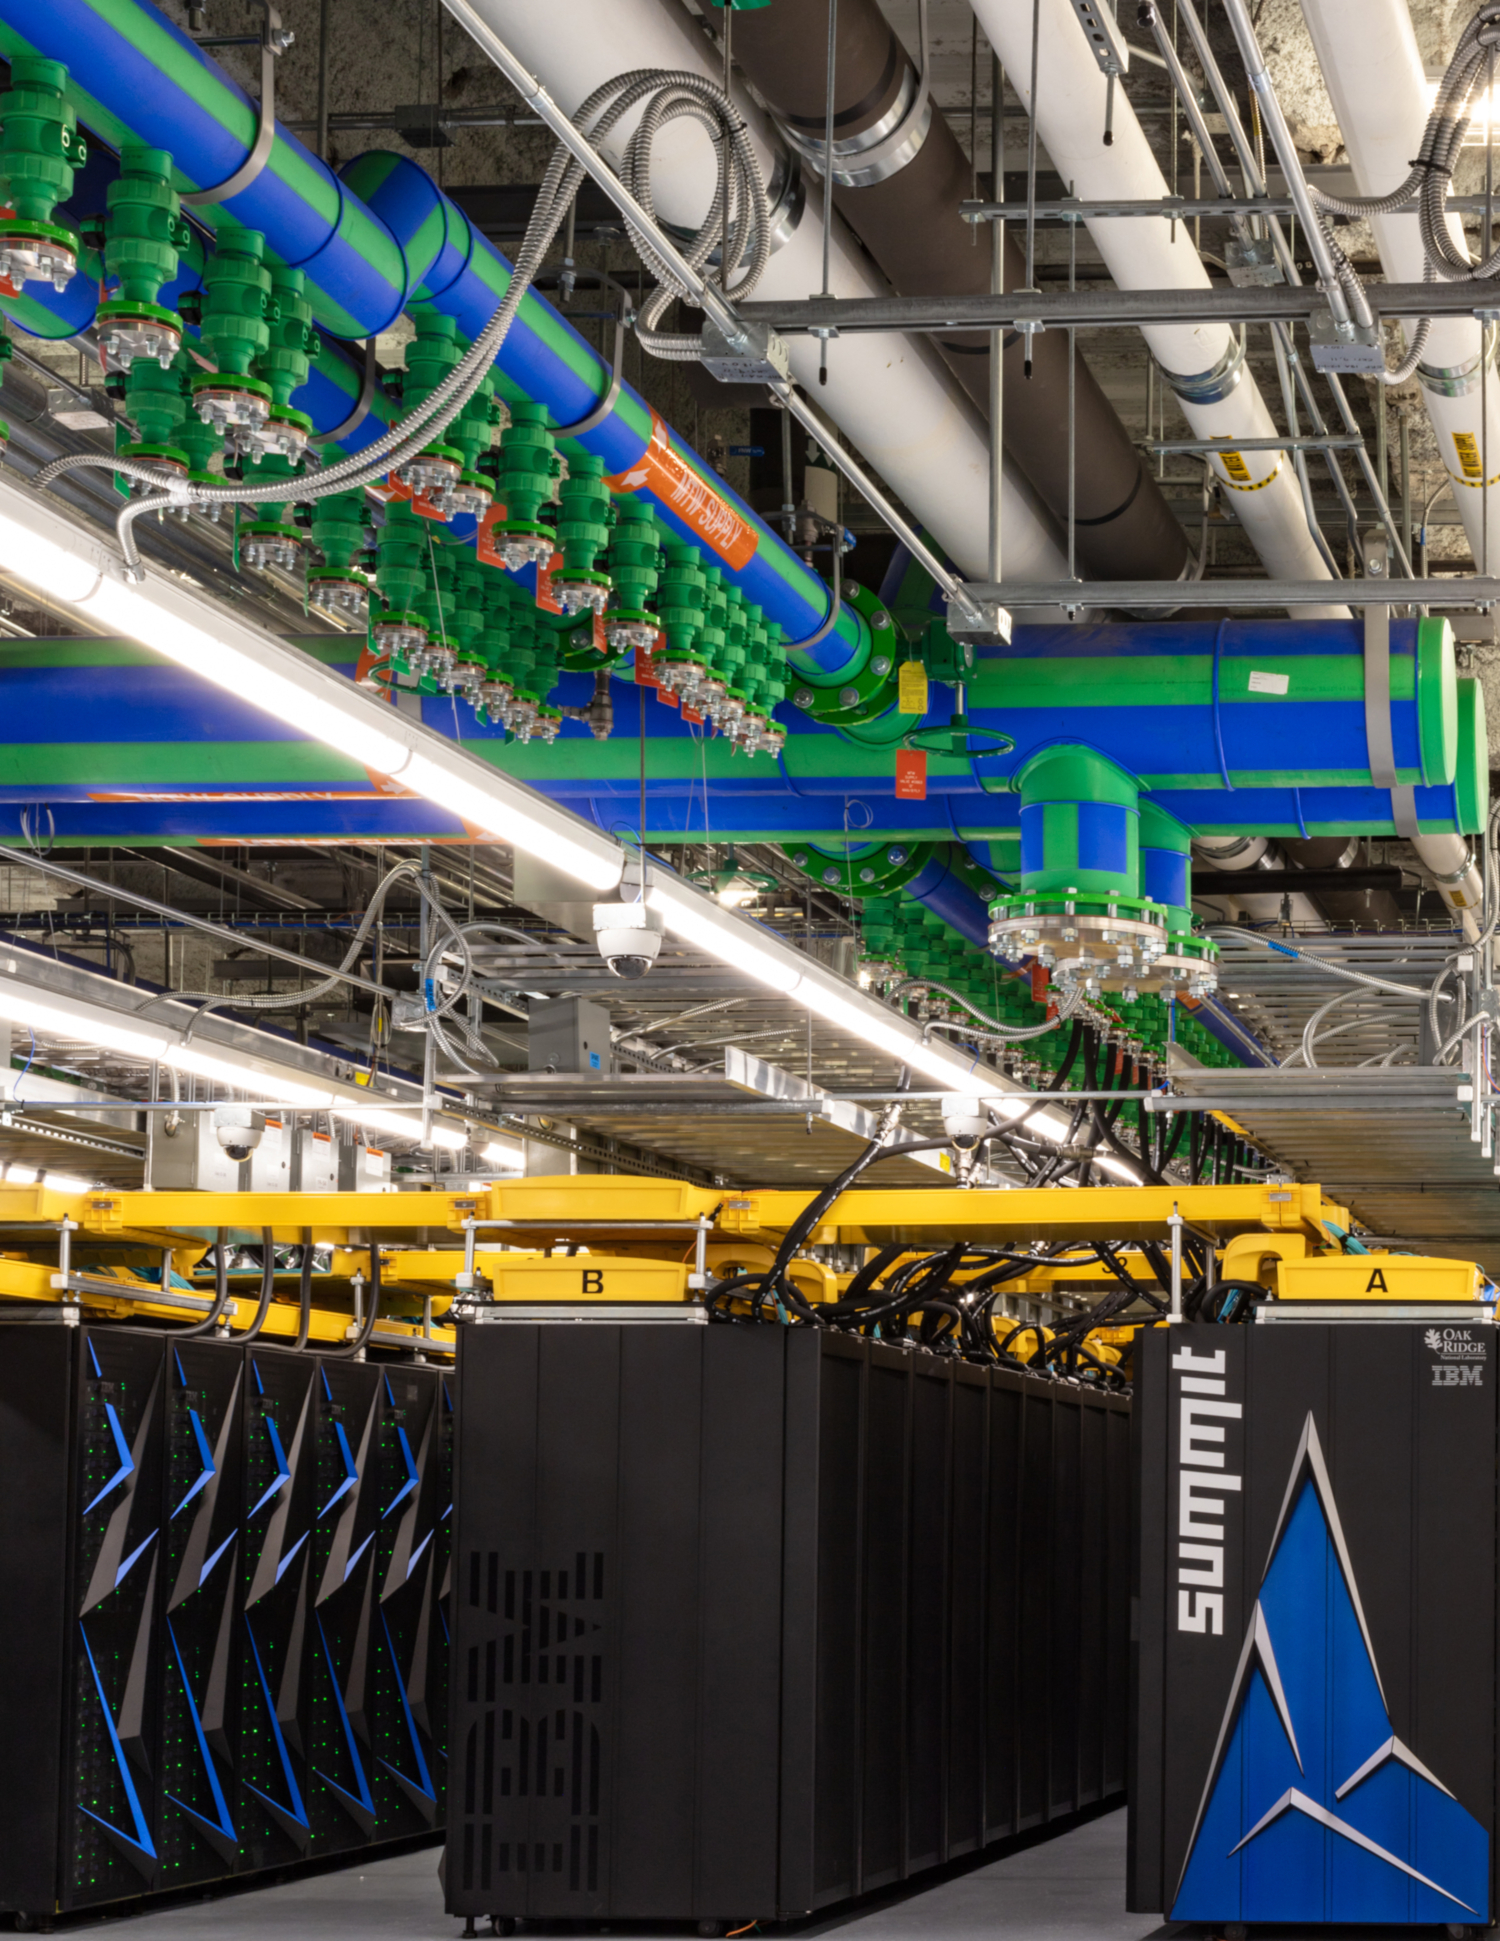 Summit supercomputer with a peak performance of 200,000 trillion calculations per second or 200 petaflops (credits: Carlos Jones / ORNL / Flickr Creative Commons Attribution 2.0 Generic (CC BY 2.0))